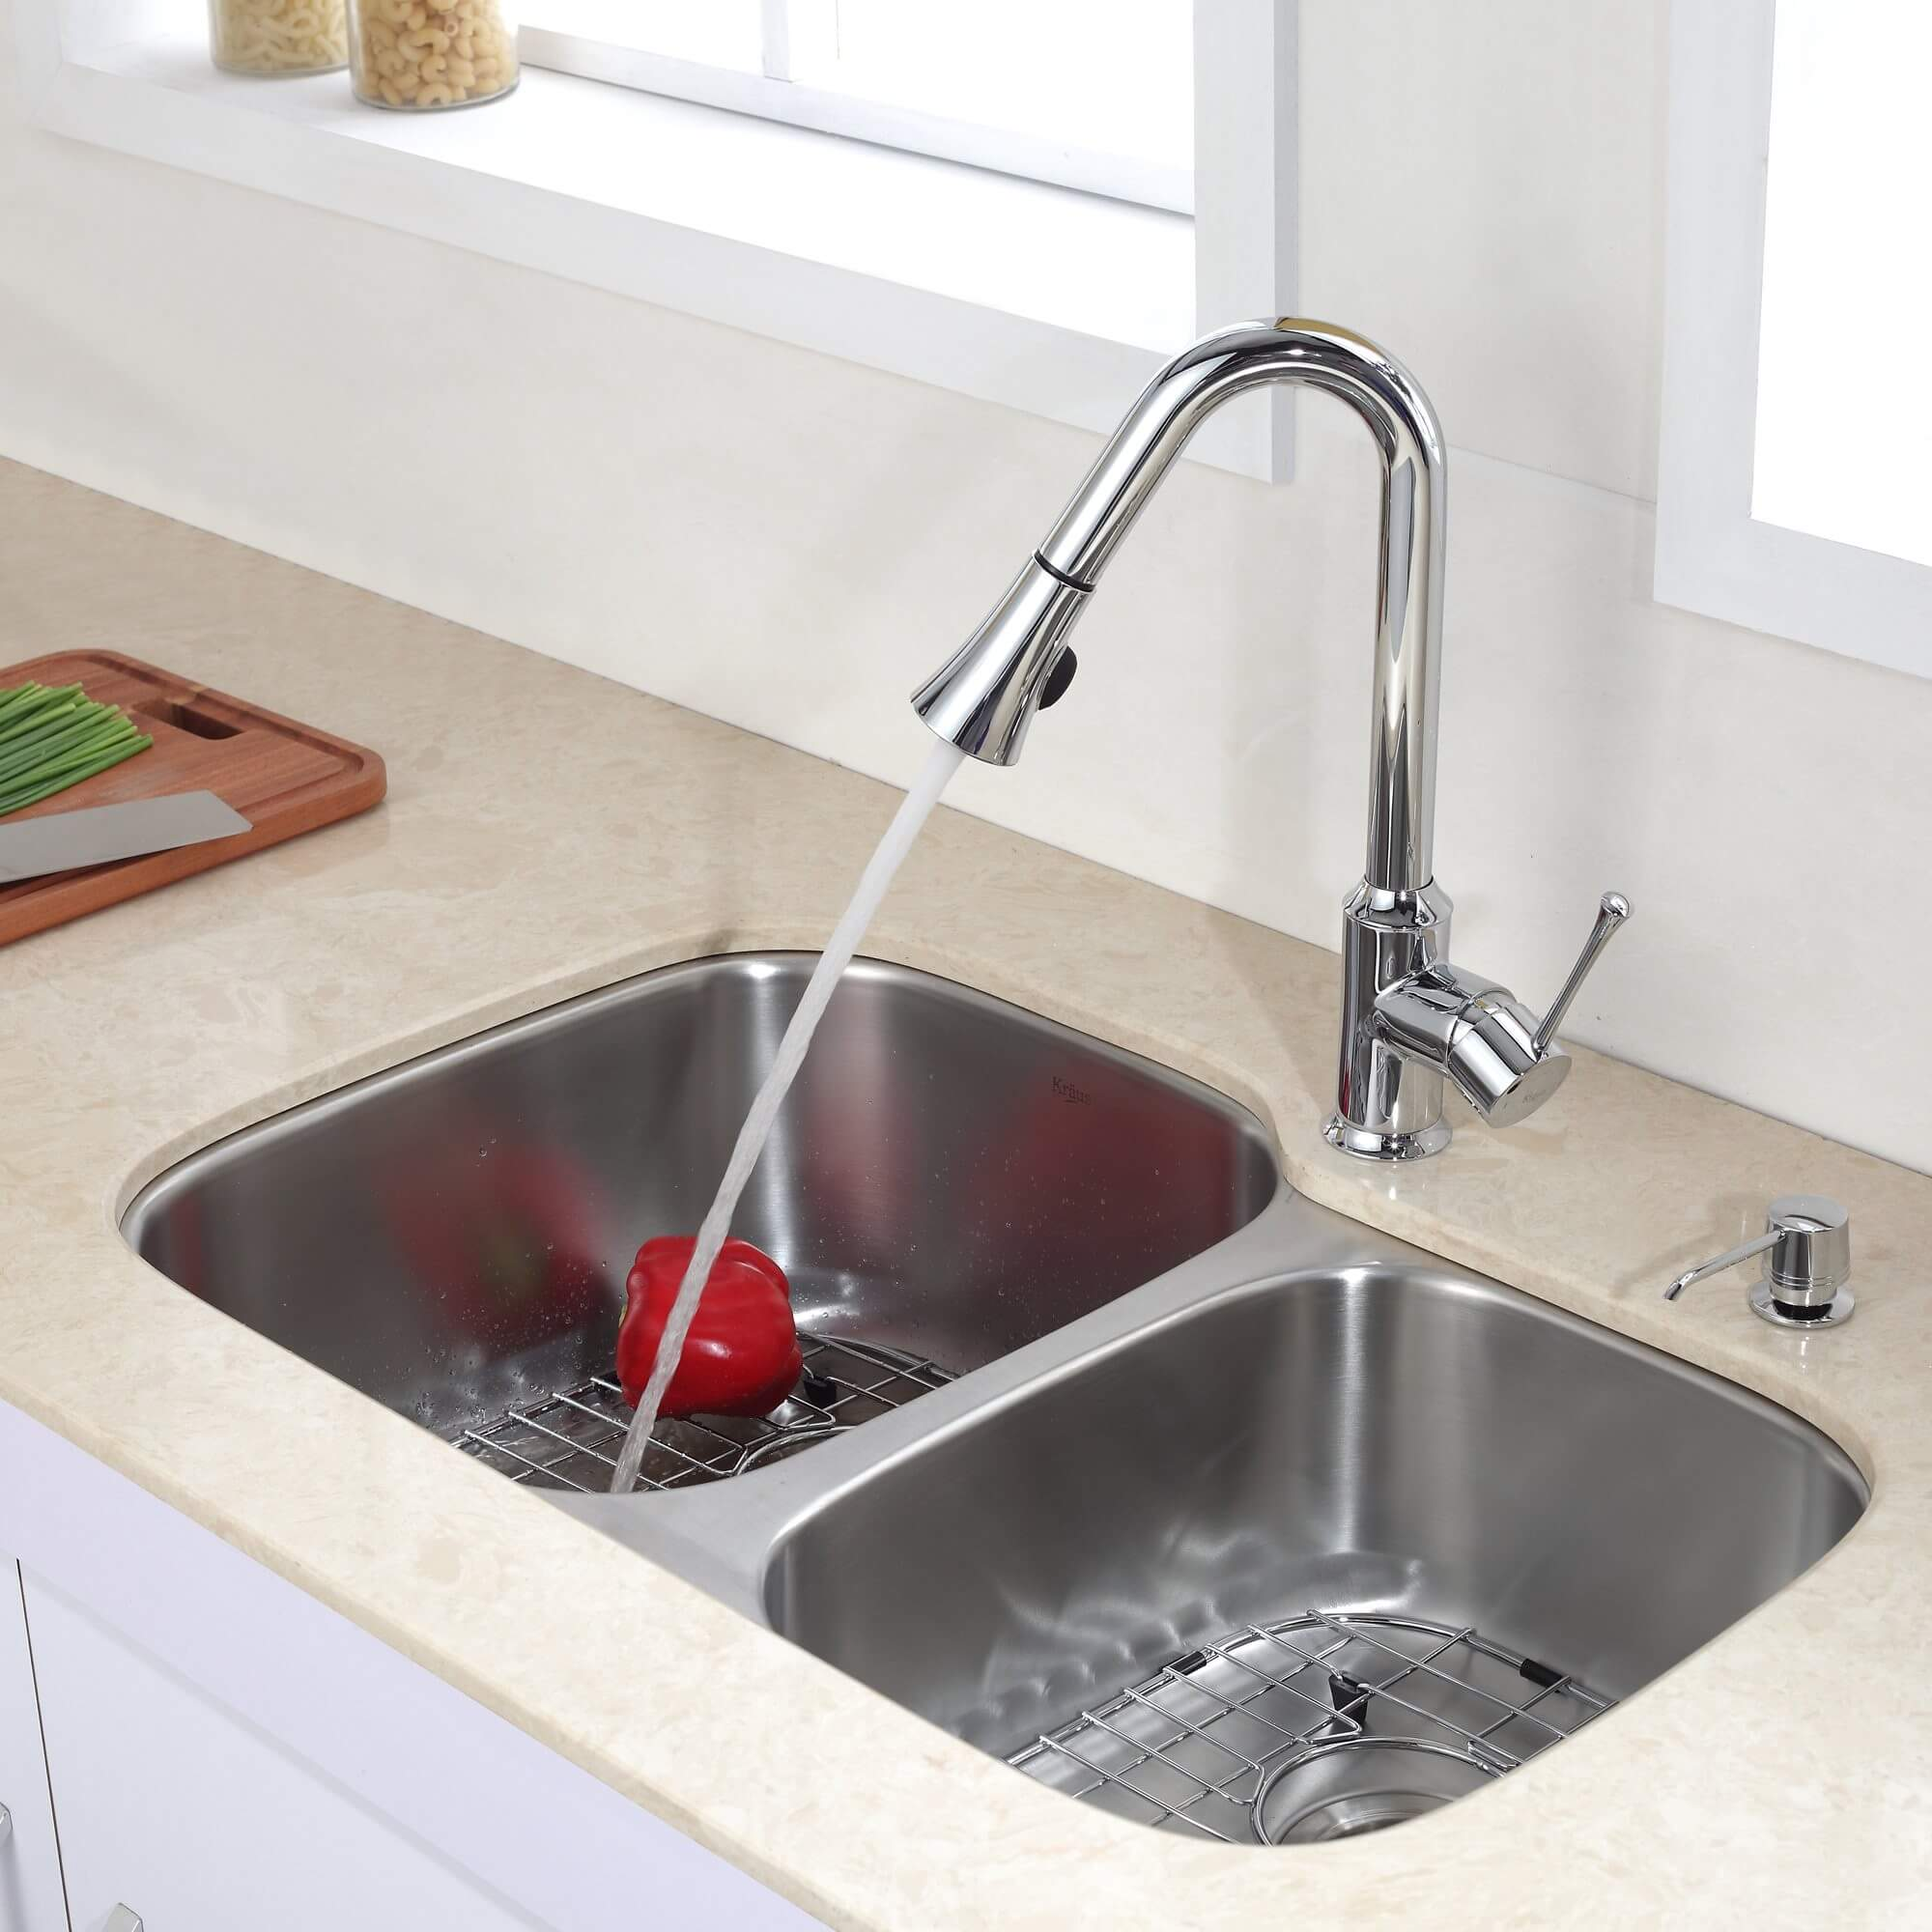 The PSI of your faucet should also not dip too low or problems may occur